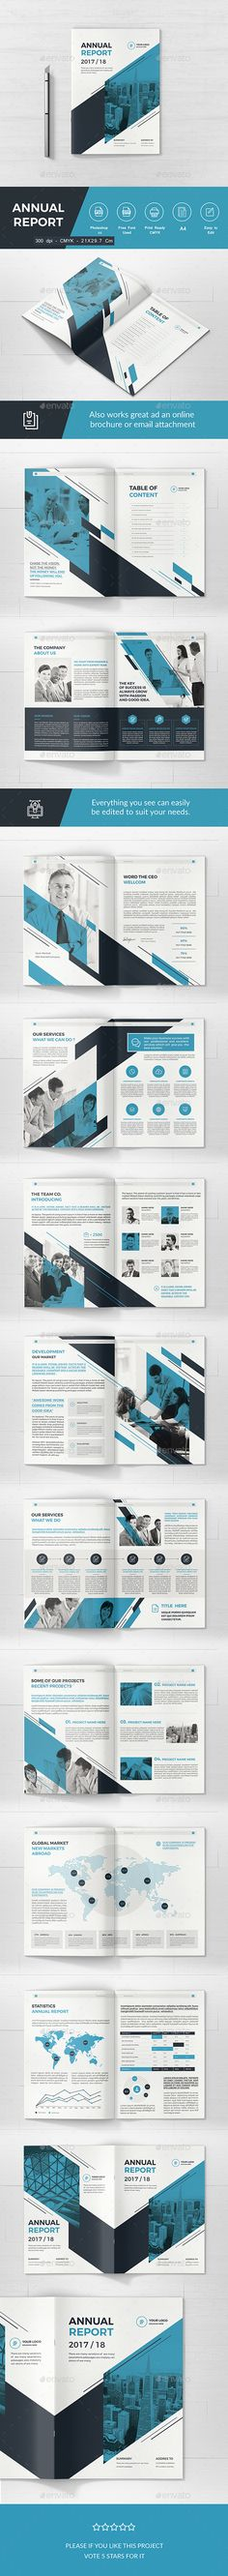 Annual Report Template InDesign INDD A4 anf US Letter Size - company annual report sample